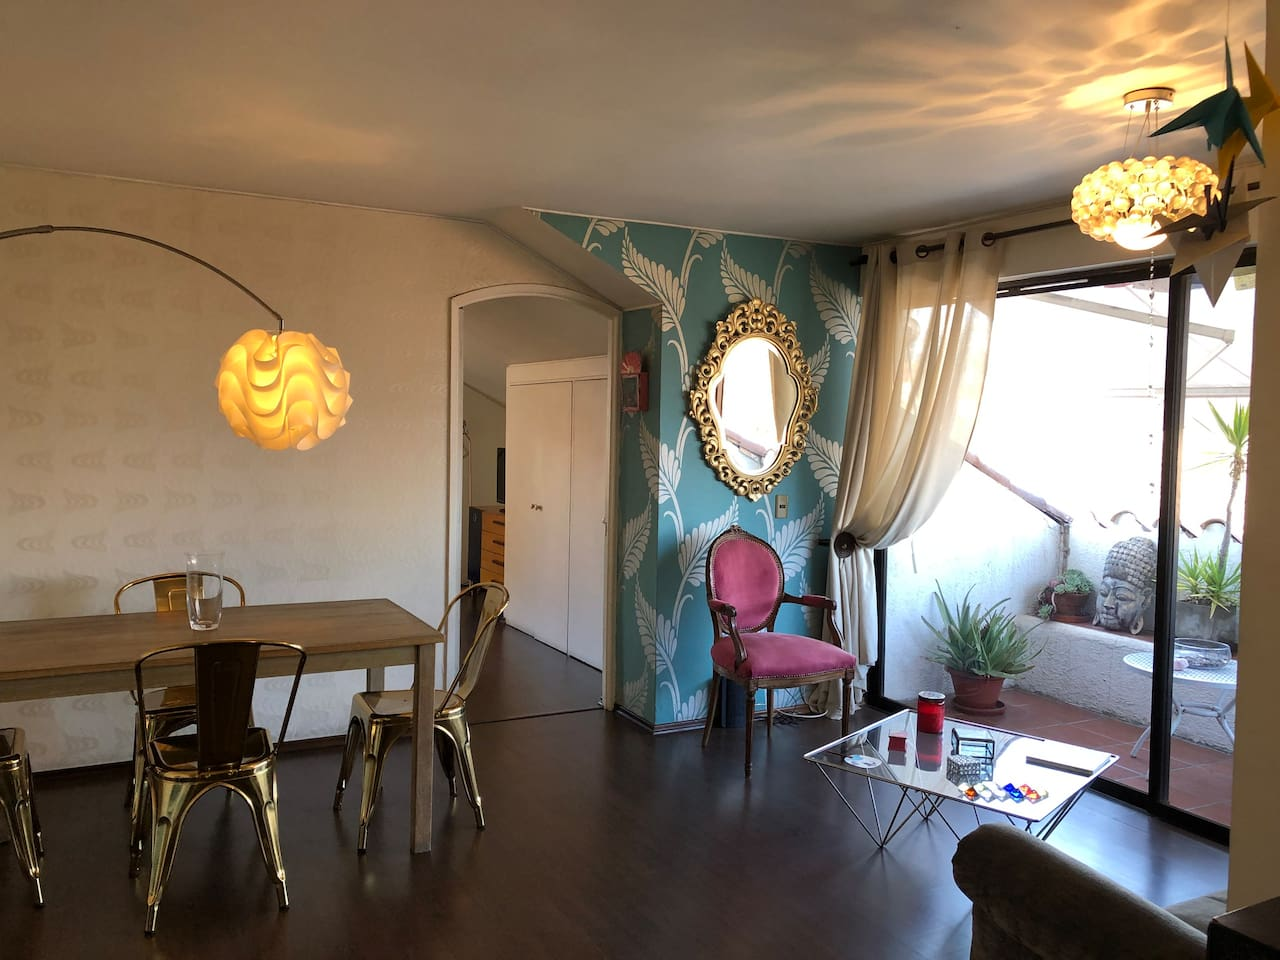 A beautiful 2 bedroom apartment in a quite and one of the safest areas in Santiago. Next to Parque Arauco , Clinica Alemana and best restaurants and locomotion is all nearby.